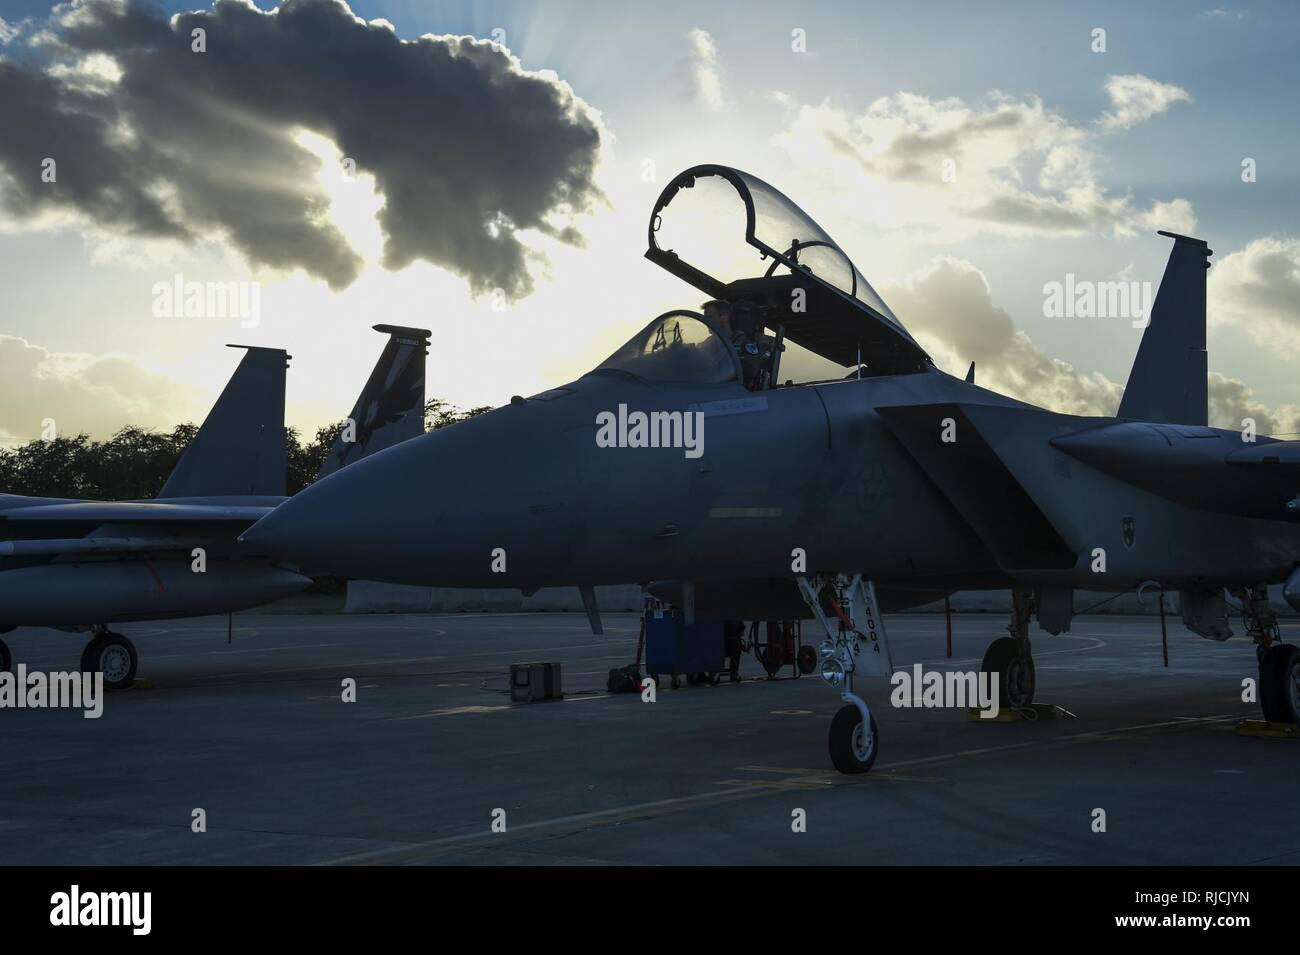 U S  Air Force F-15C Eagle fighter jets from California Air National